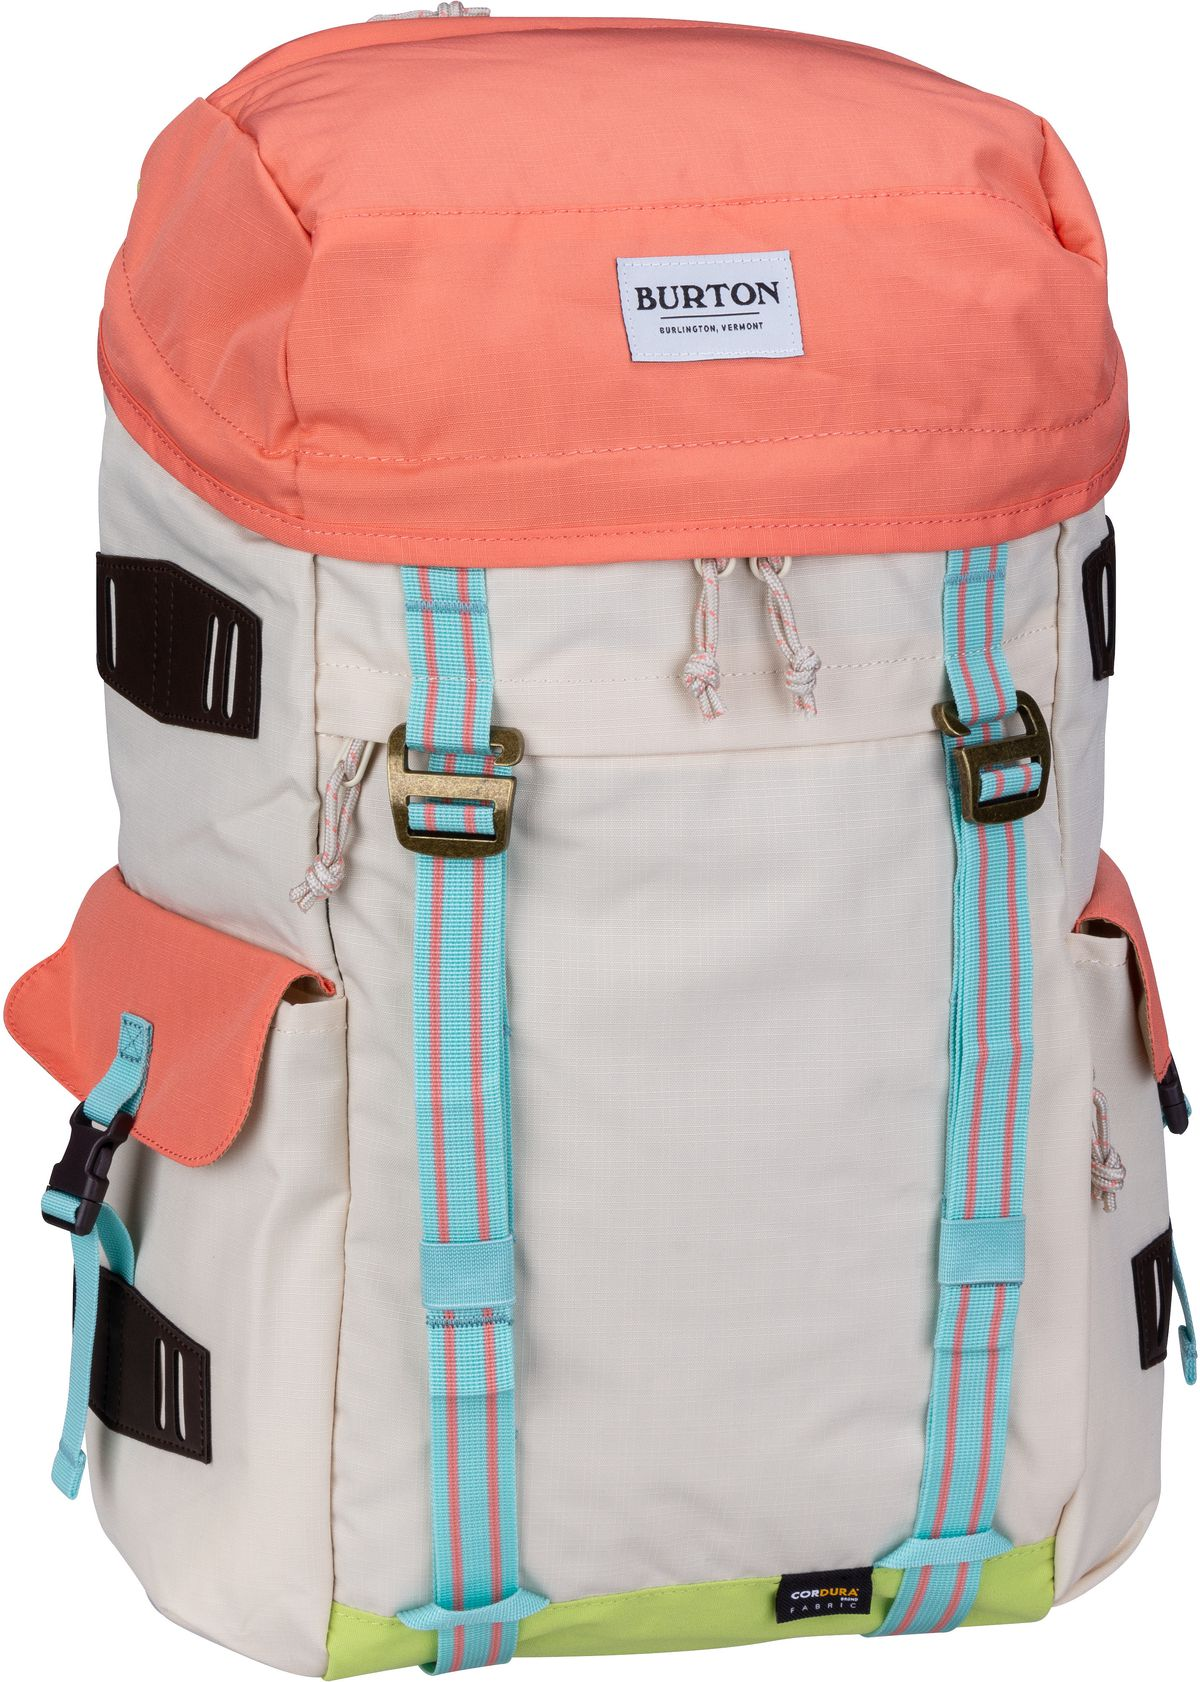 Laptoprucksack Annex 28L Backpack Creme Brulee Triple Ripstop Co (28 Liter)